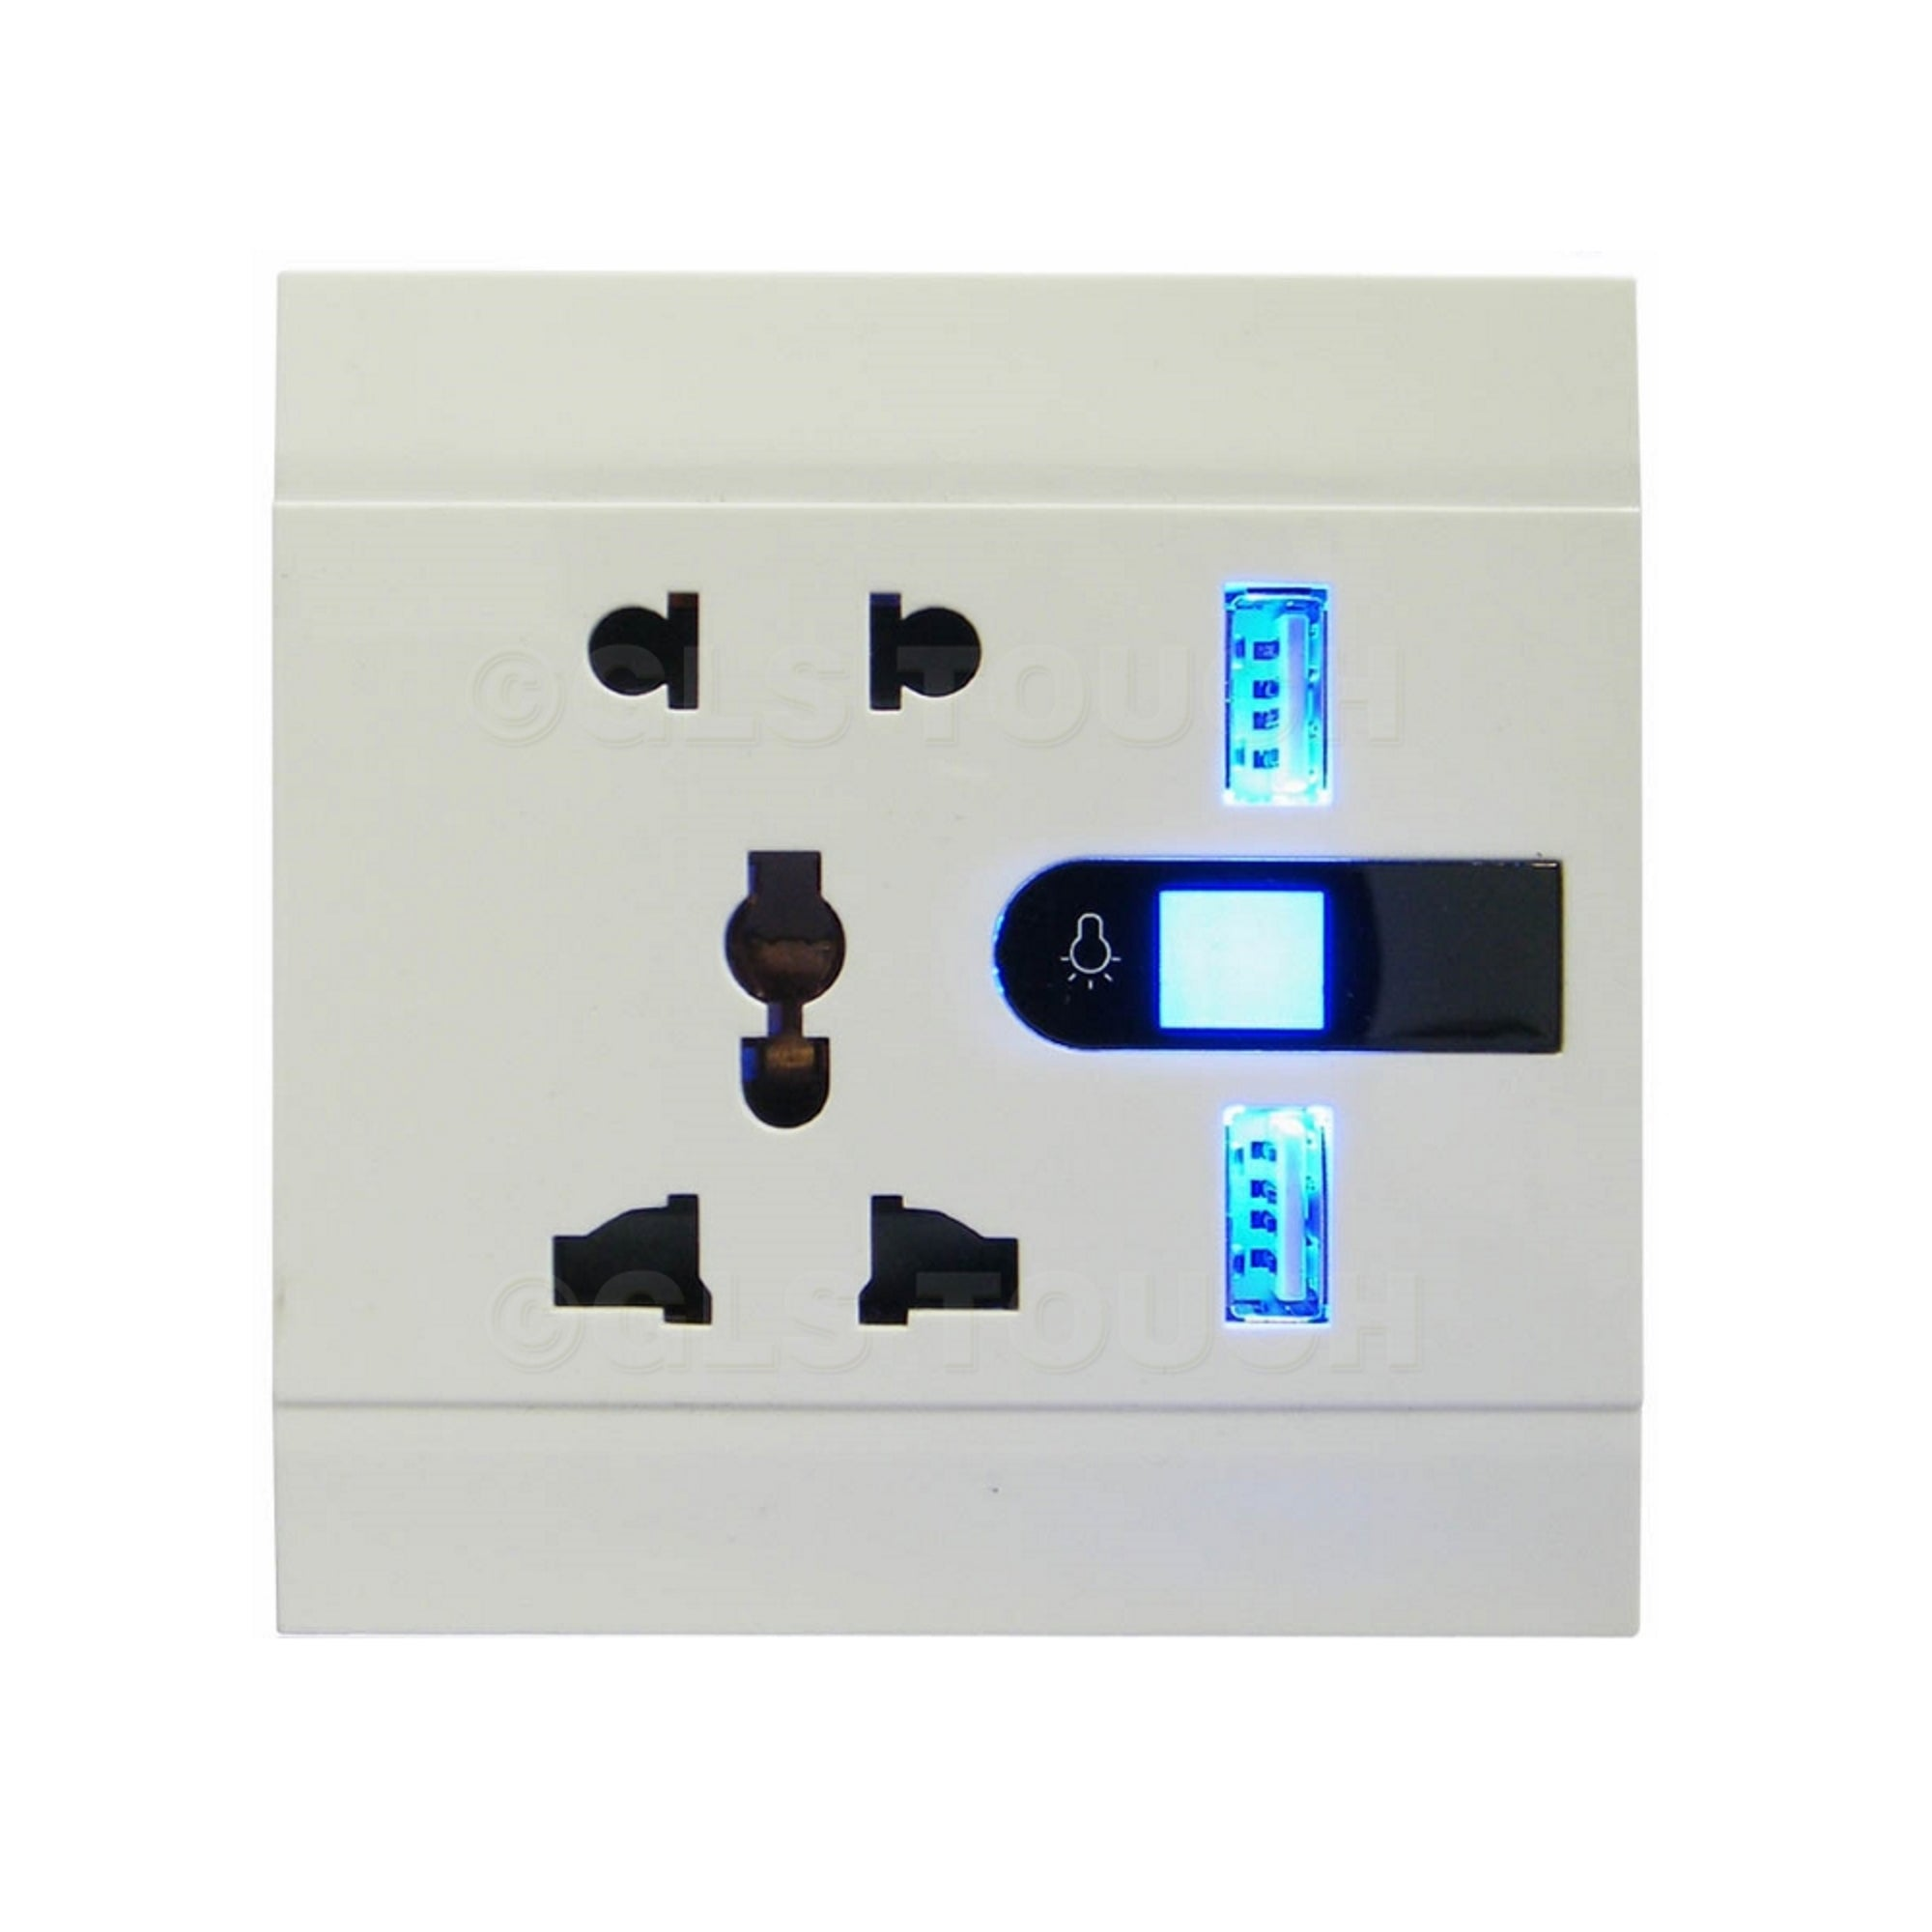 Universal 13A/10A Wall Power Socket 5-Pin & Dual USB Charger - White